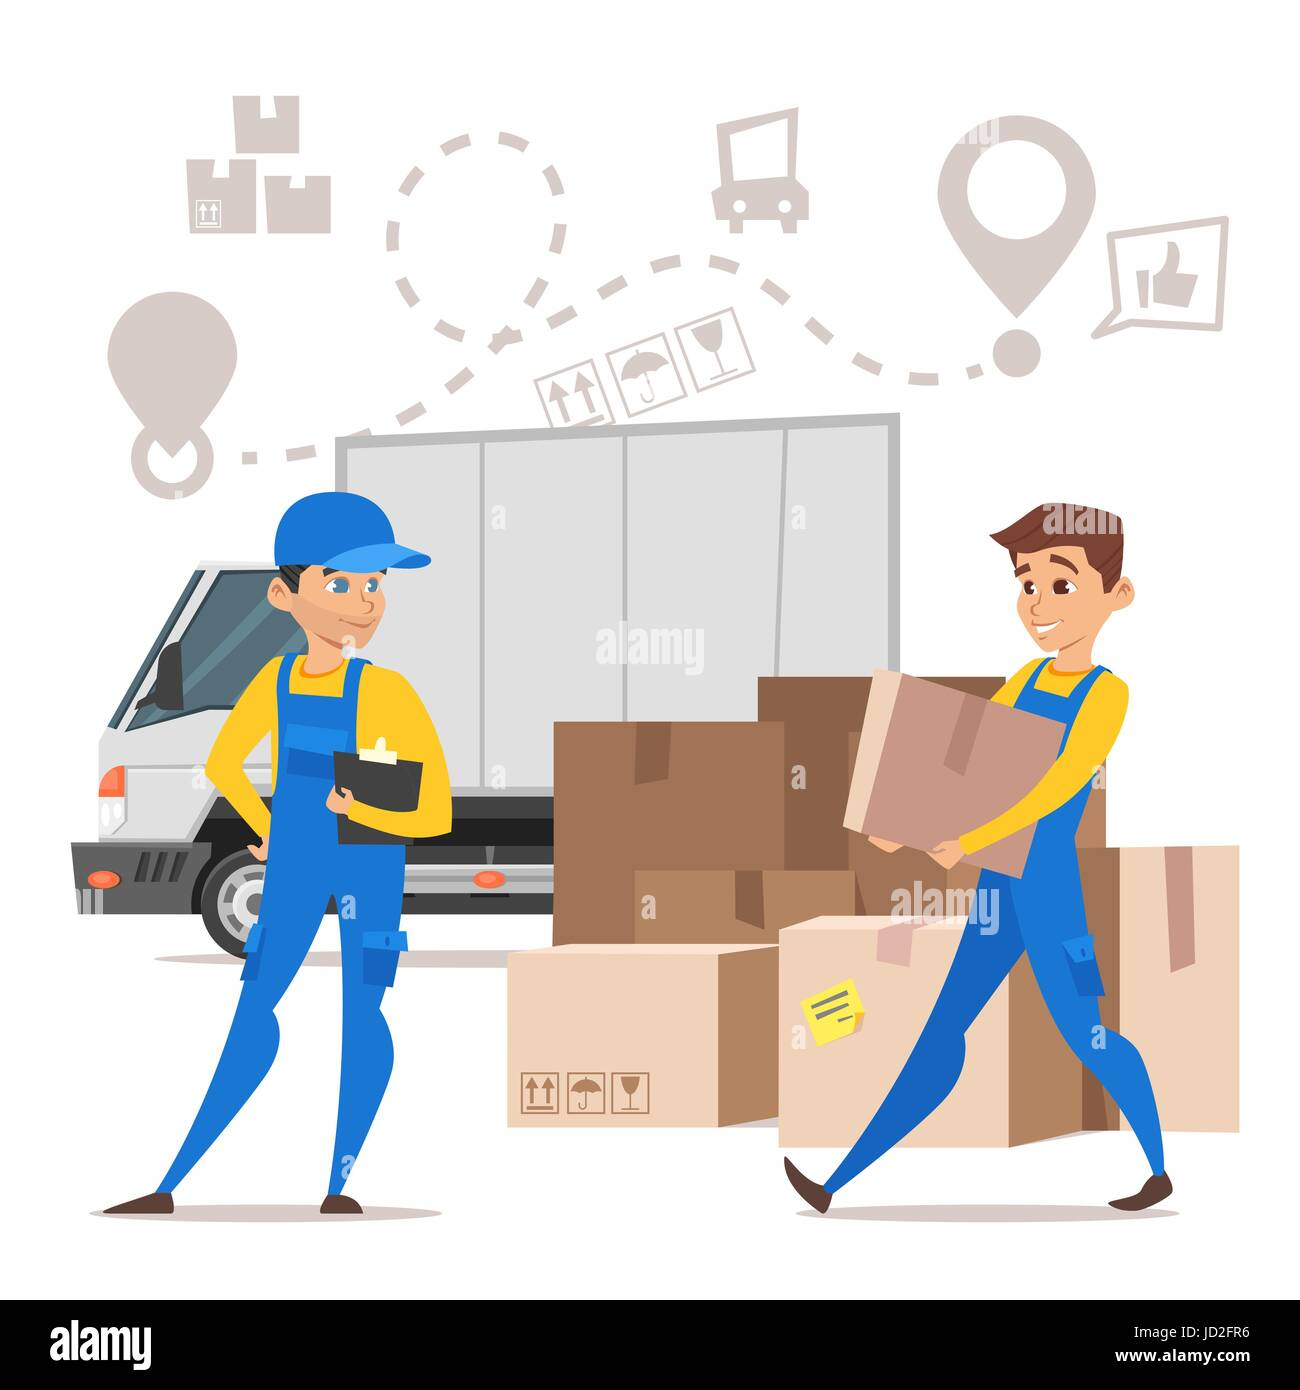 Vector cartoon style illustration of loaders movers man carrying cardboard boxes. Paper boxes and a truck. Concept - Stock Vector